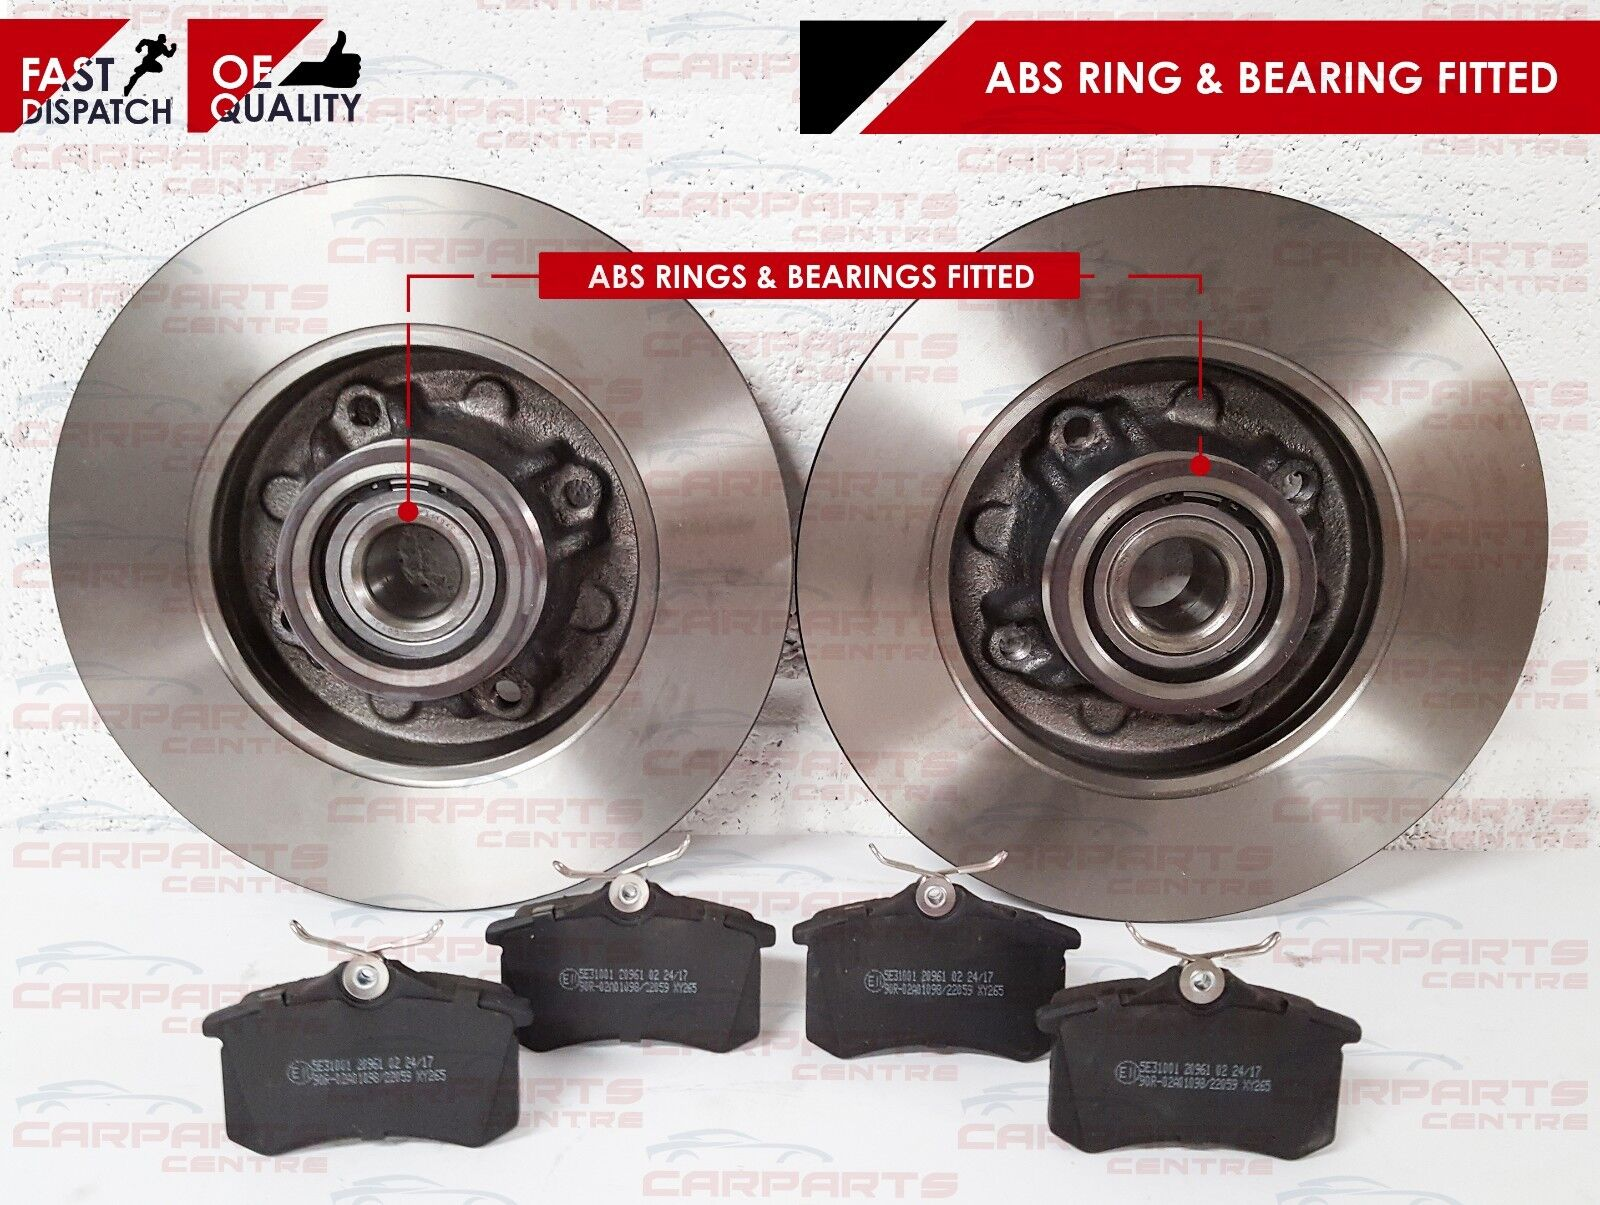 PEUGEOT 207 REAR BRAKE DISCS FITTED WHEEL BEARINGS /& ABS RINGS AND PADS SET NEW